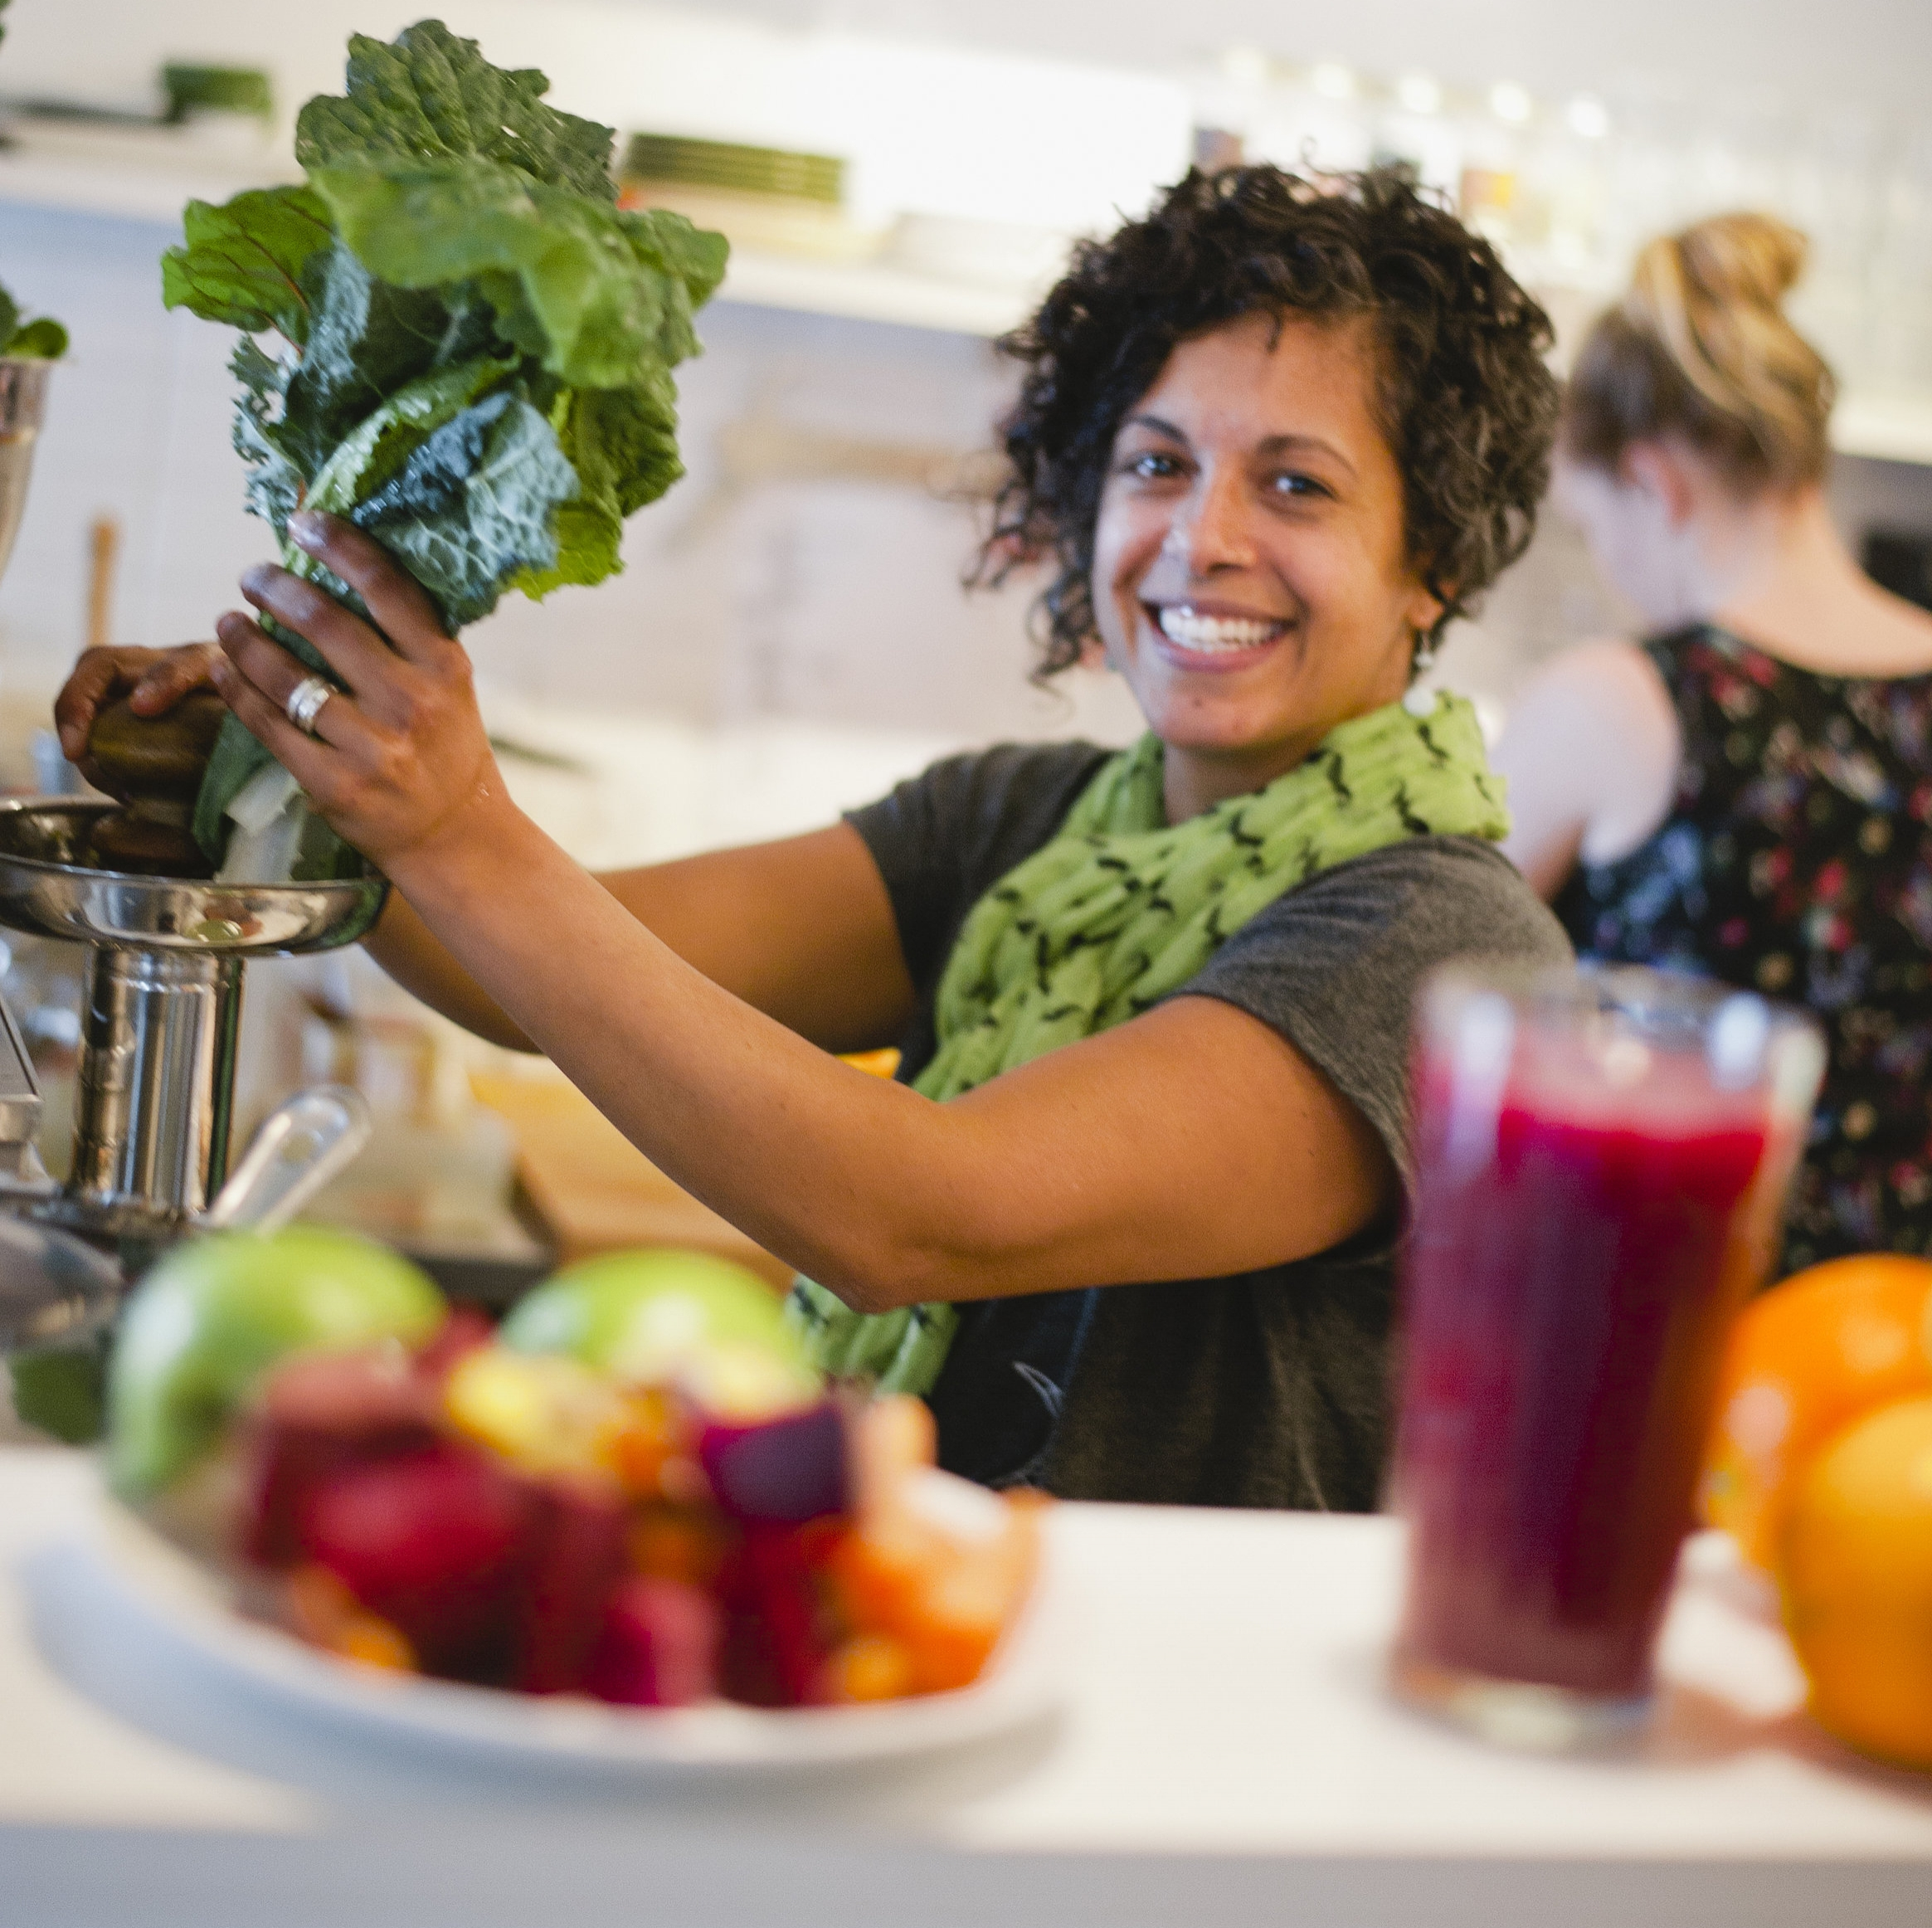 Our founder, Nicolette, juicing up some green goodness